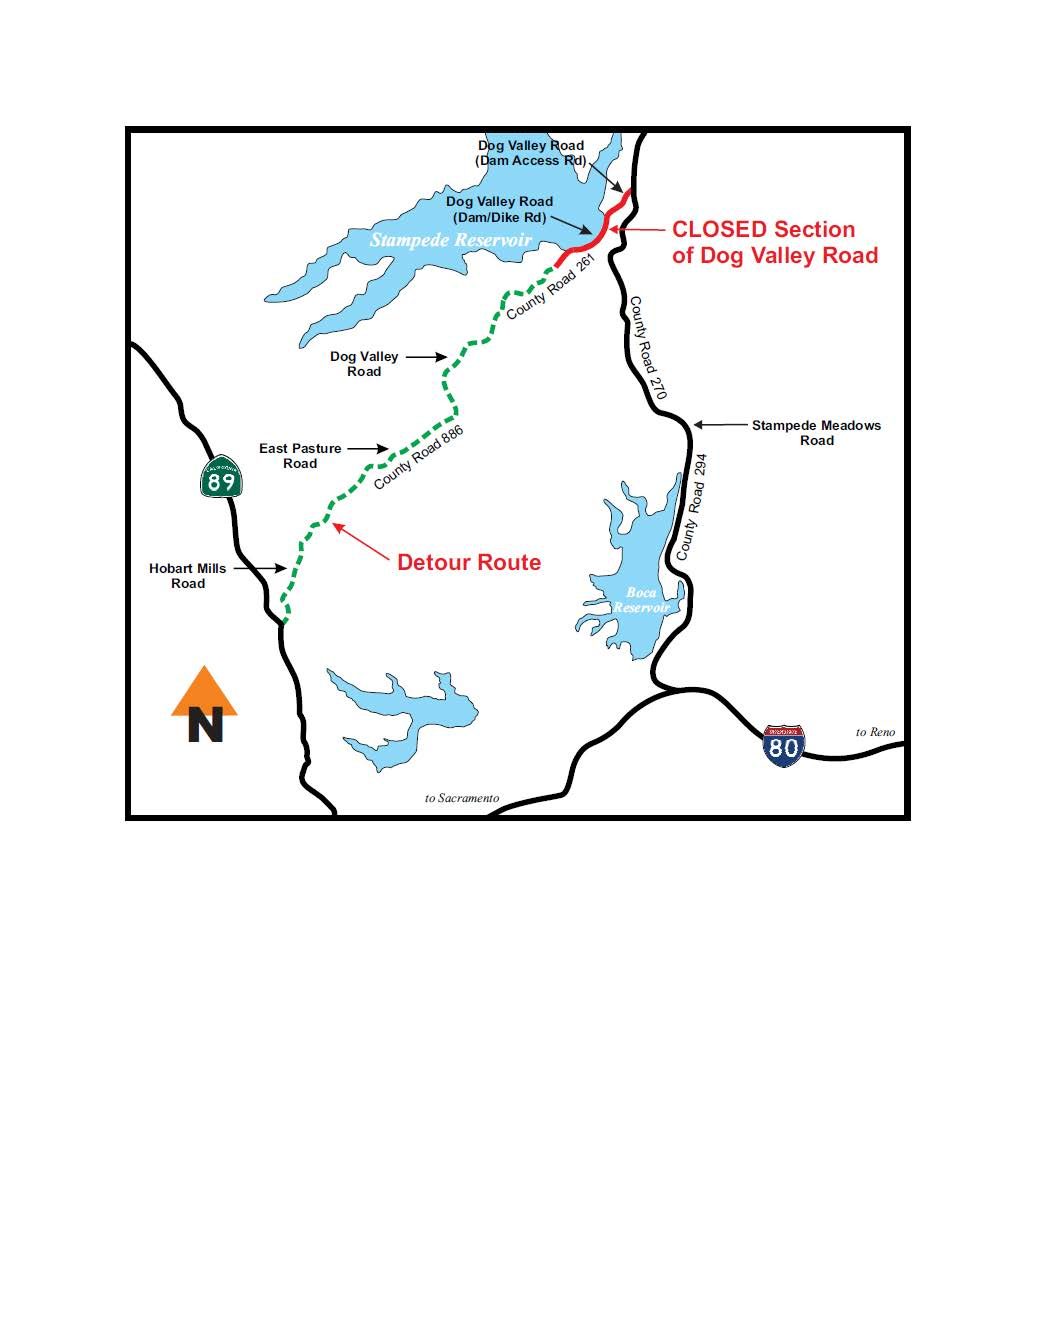 Noninteractive detour map to Stampede Reservoir during construction